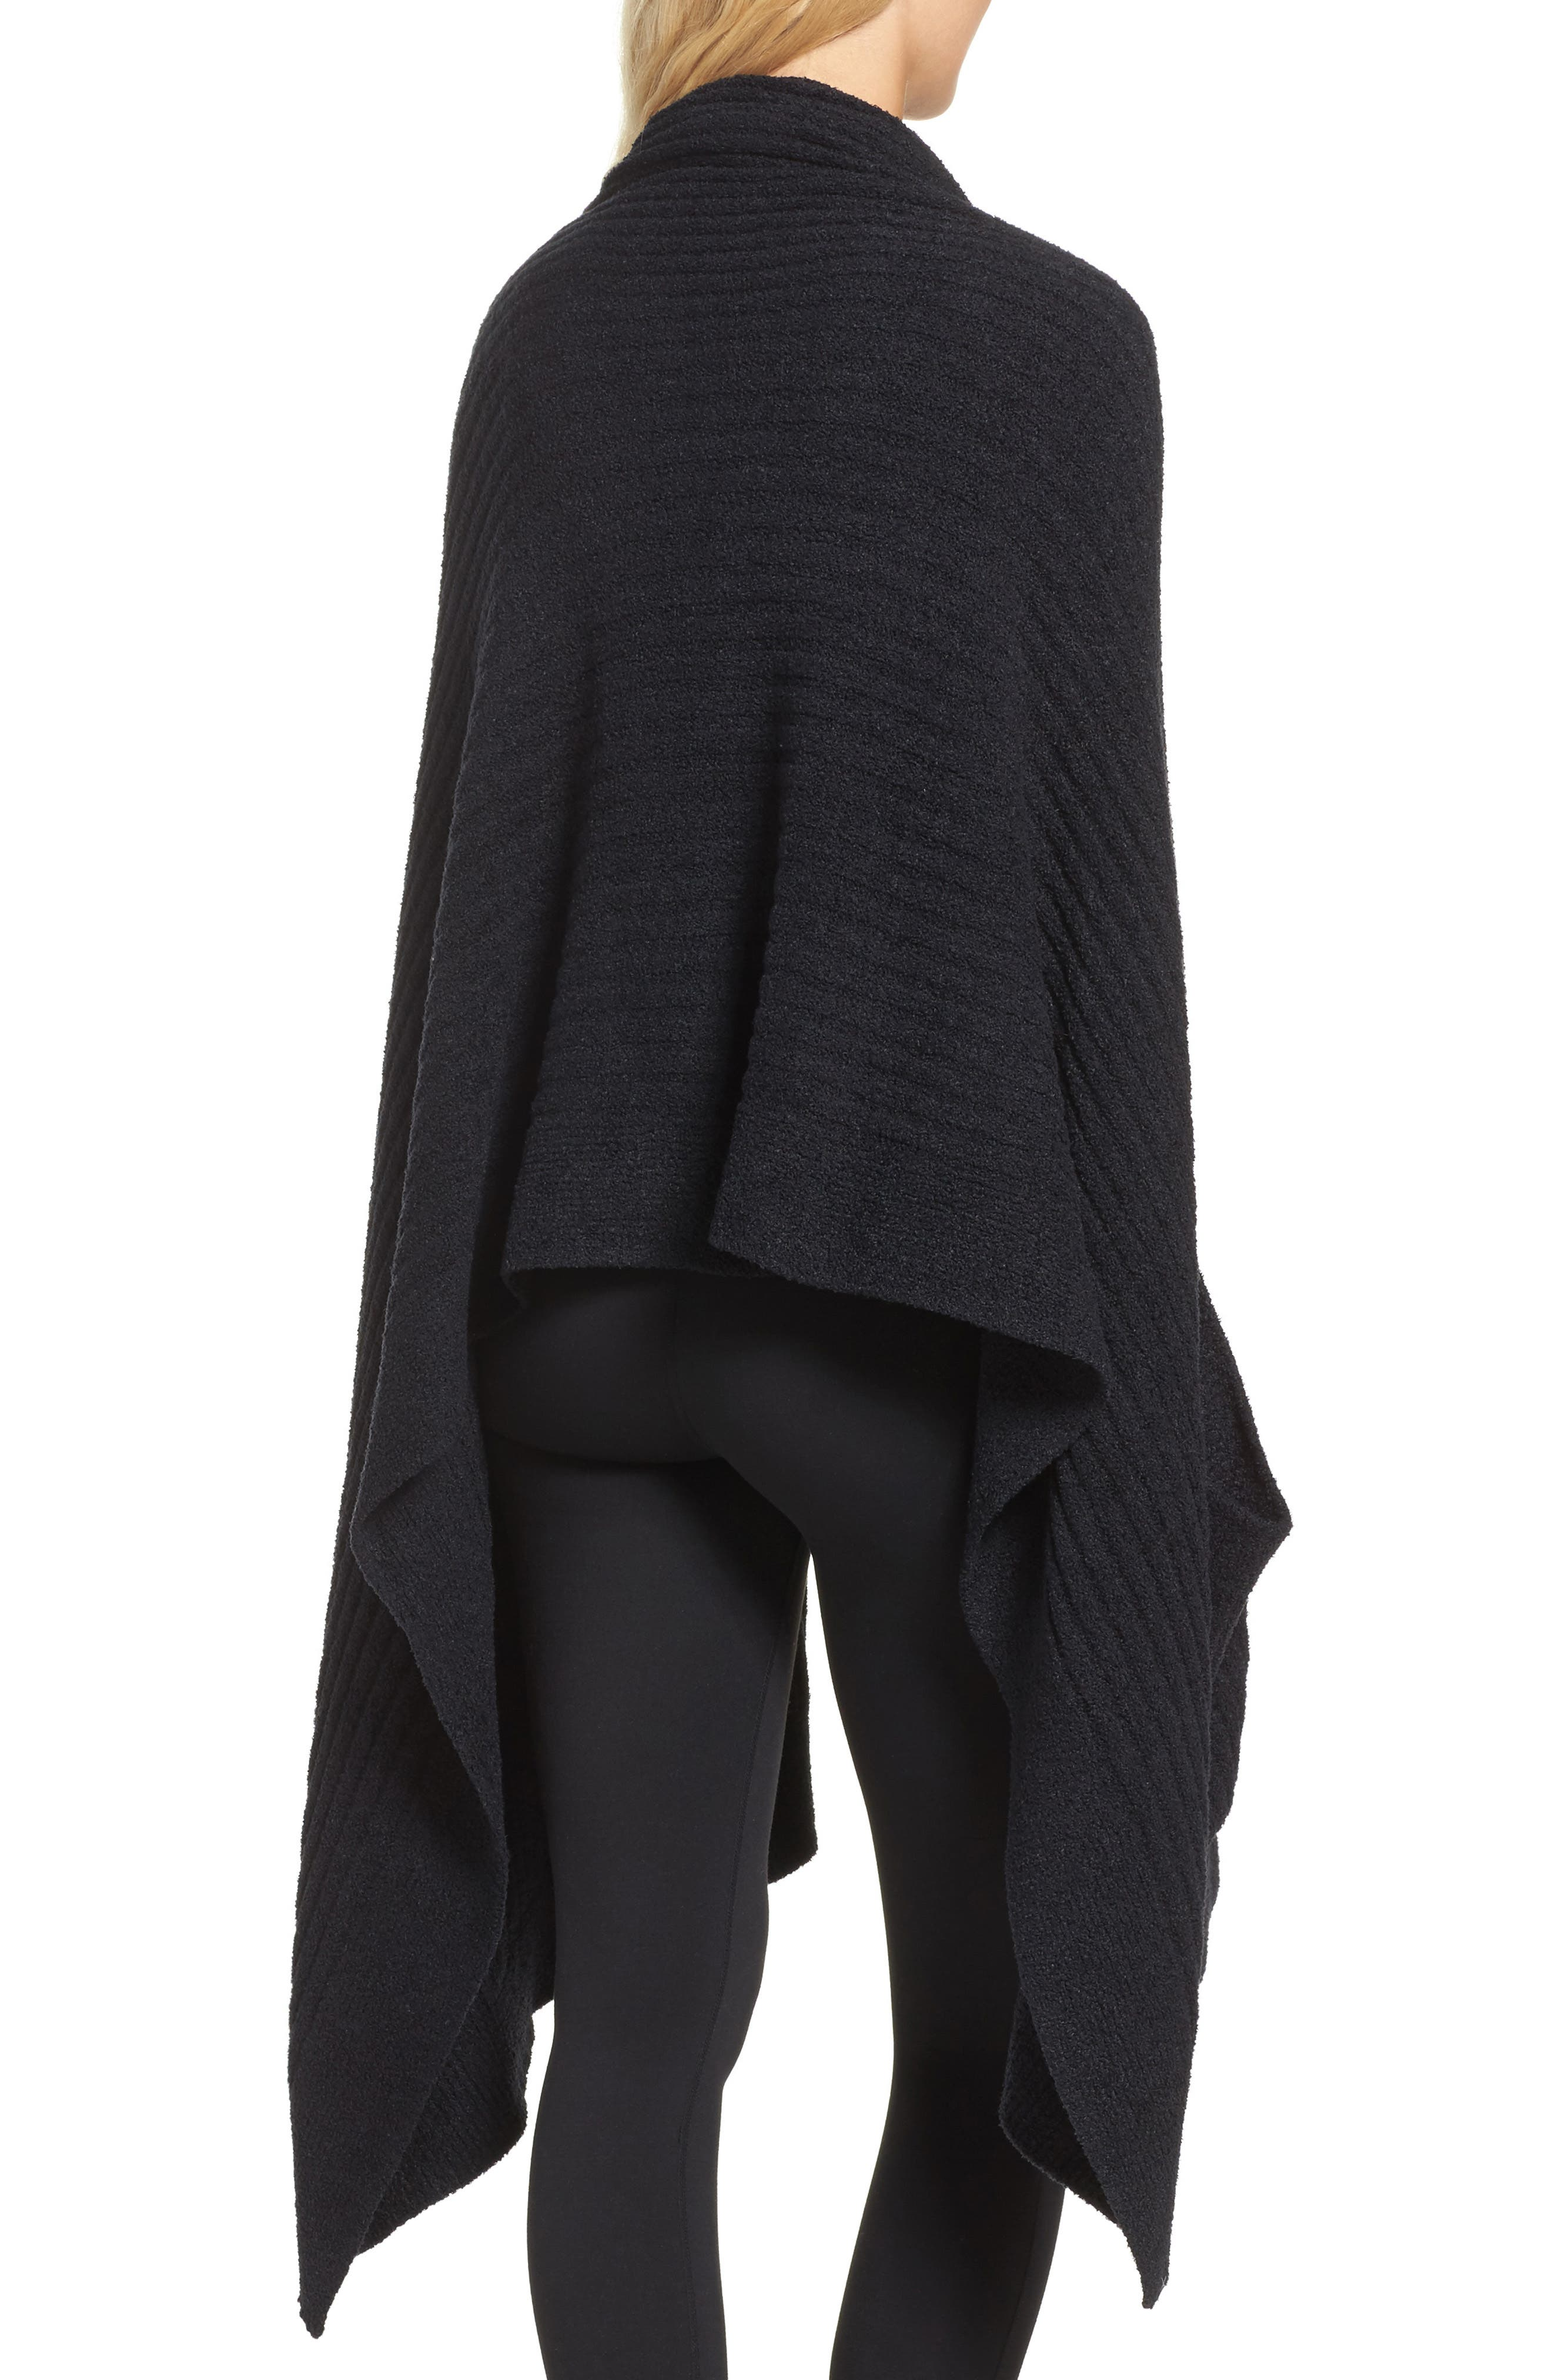 Cozychic Lite<sup>®</sup> Travel Shawl,                             Alternate thumbnail 2, color,                             Midnight